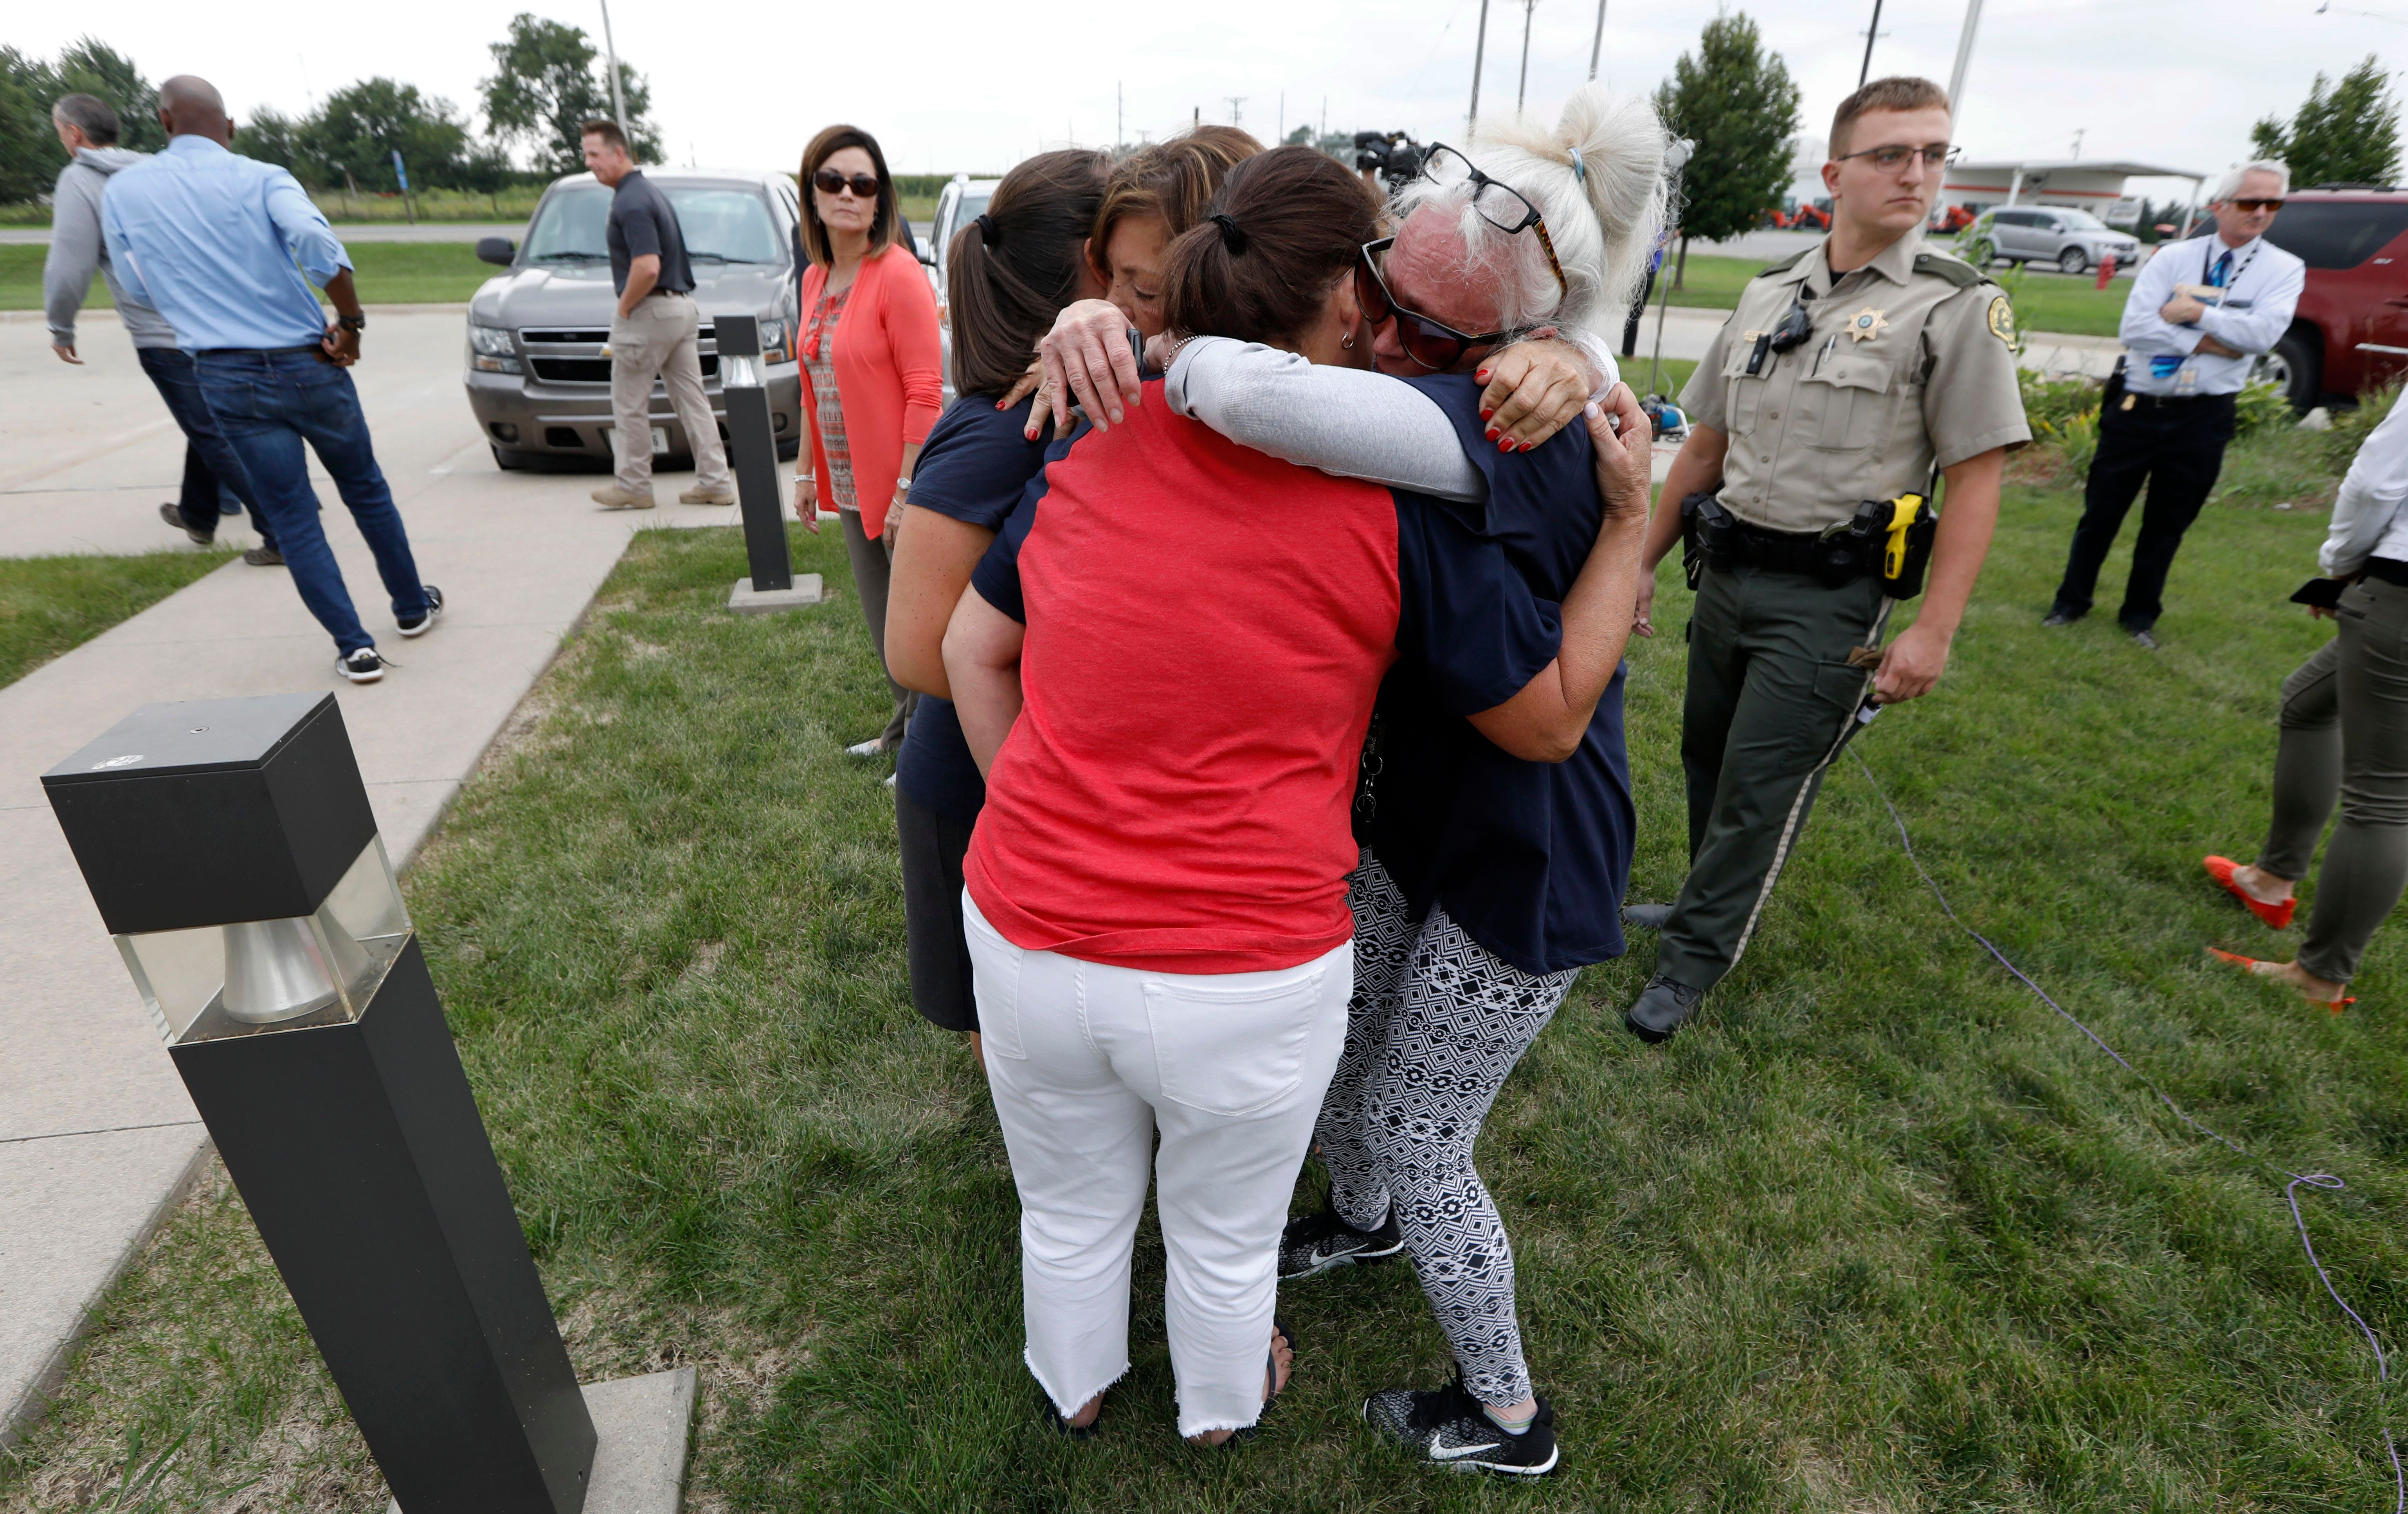 Friends and family of then-missing University of Iowa student Mollie Tibbetts react following a news conference, in Montezuma, Iowa, on Aug. 21, 2018. A funeral service for Tibbetts was held on Sunday.